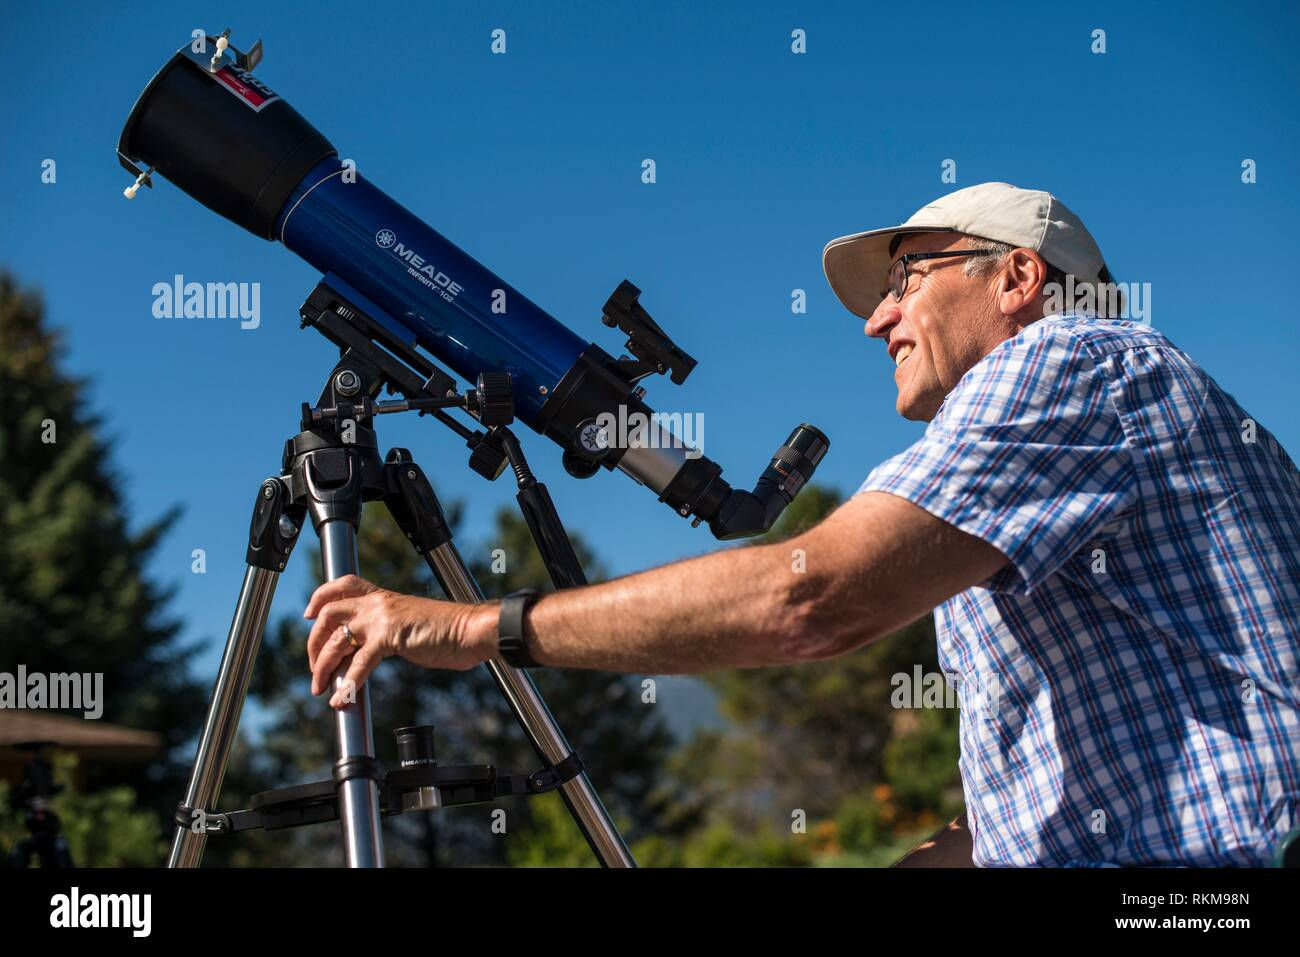 Man looking at solar eclipse with telescope - Stock Image